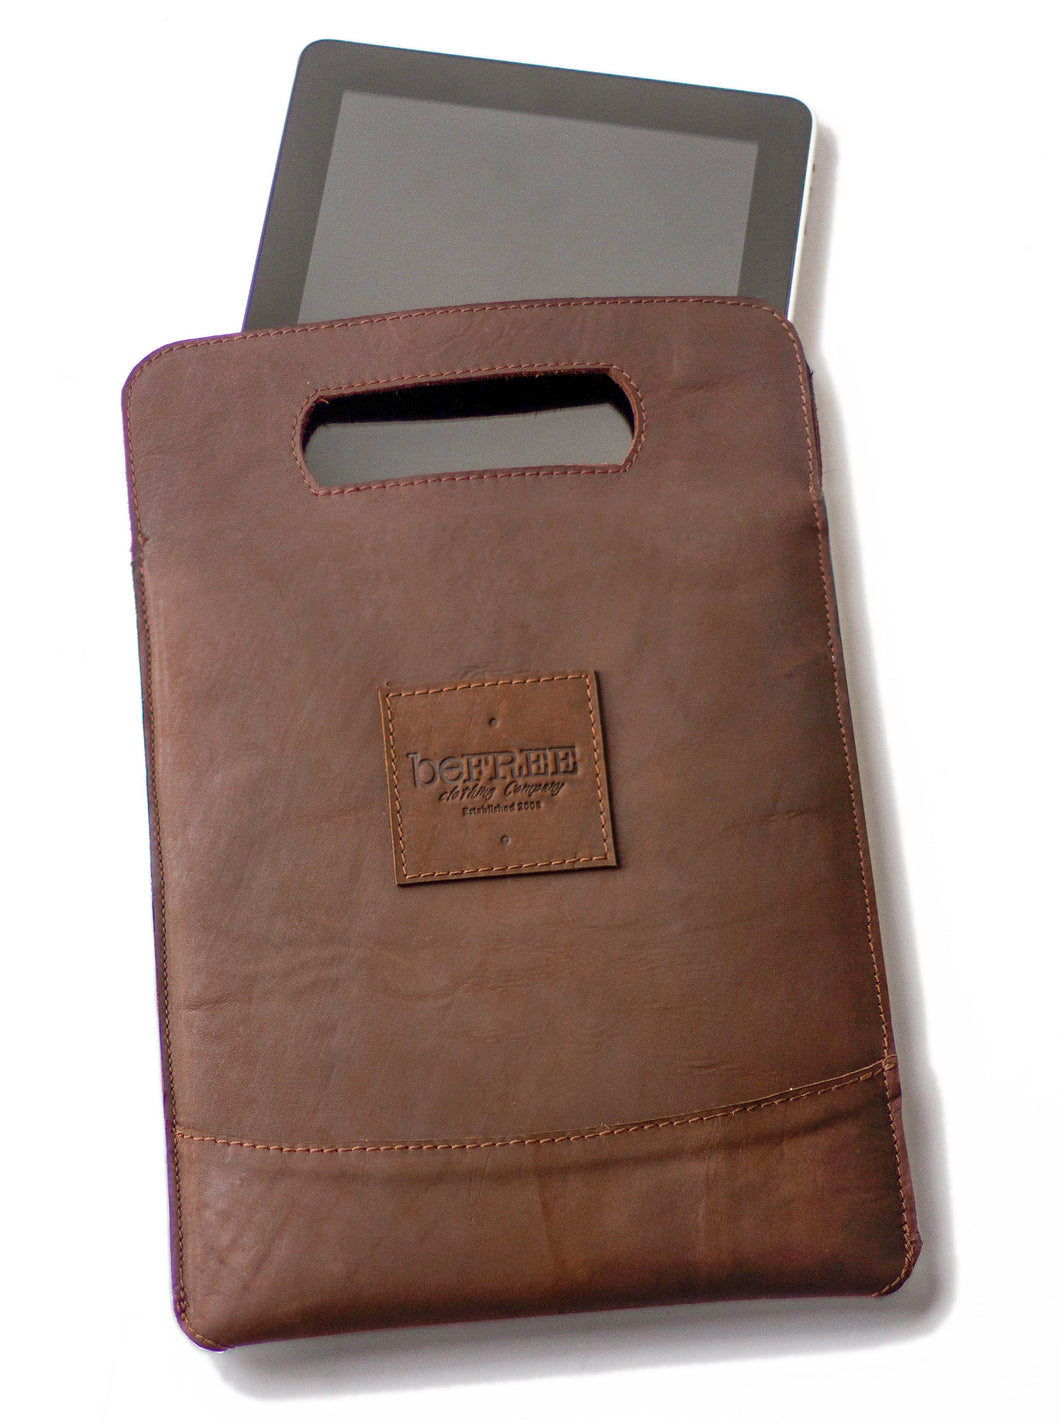 IPAD HOLDER | SUSTAINABLE DISTRESSED LEATHER